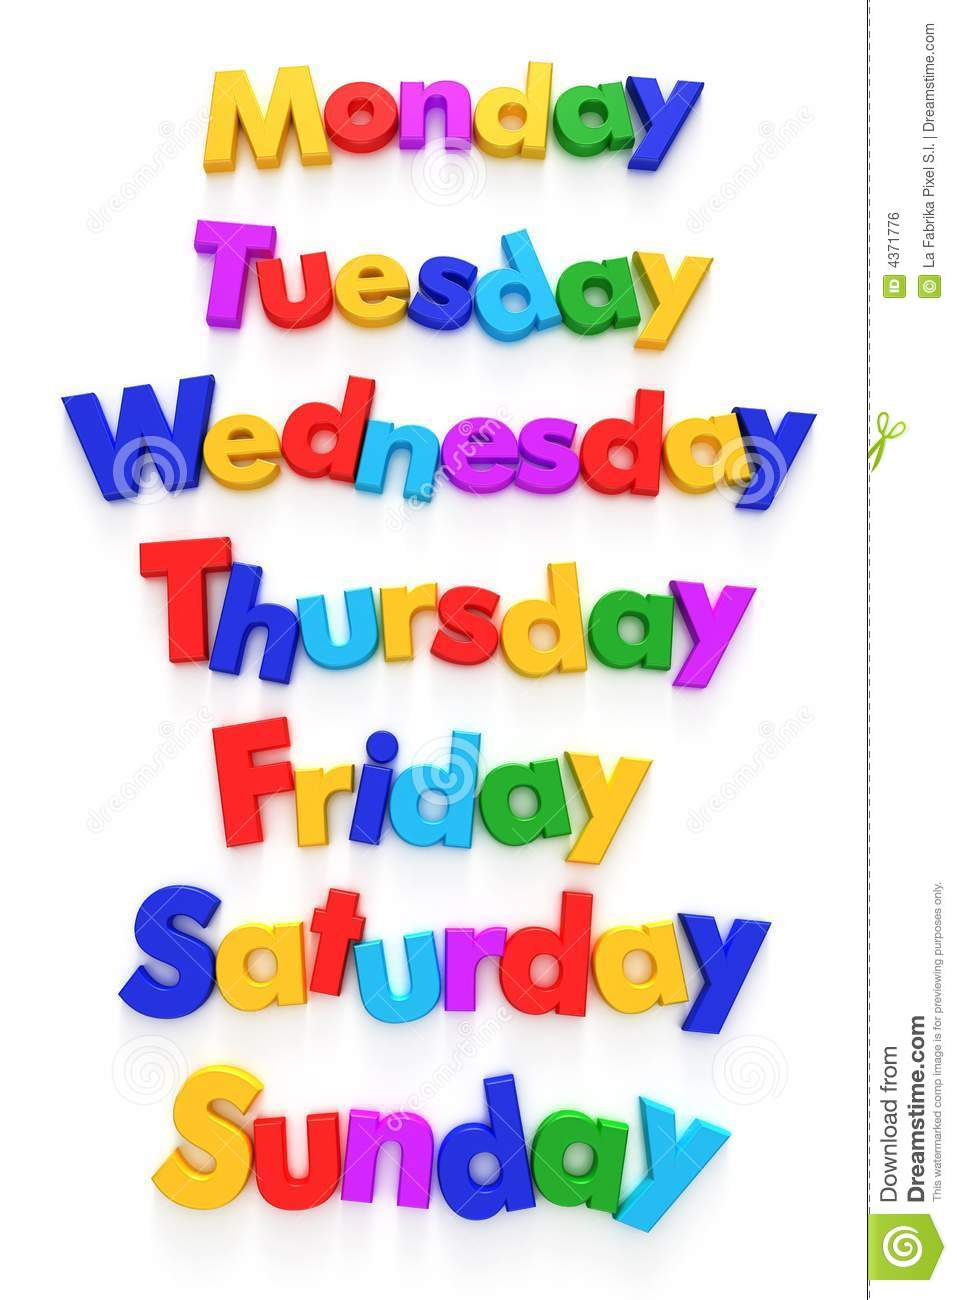 medium resolution of days of the week in letter magnets royalty free stock image